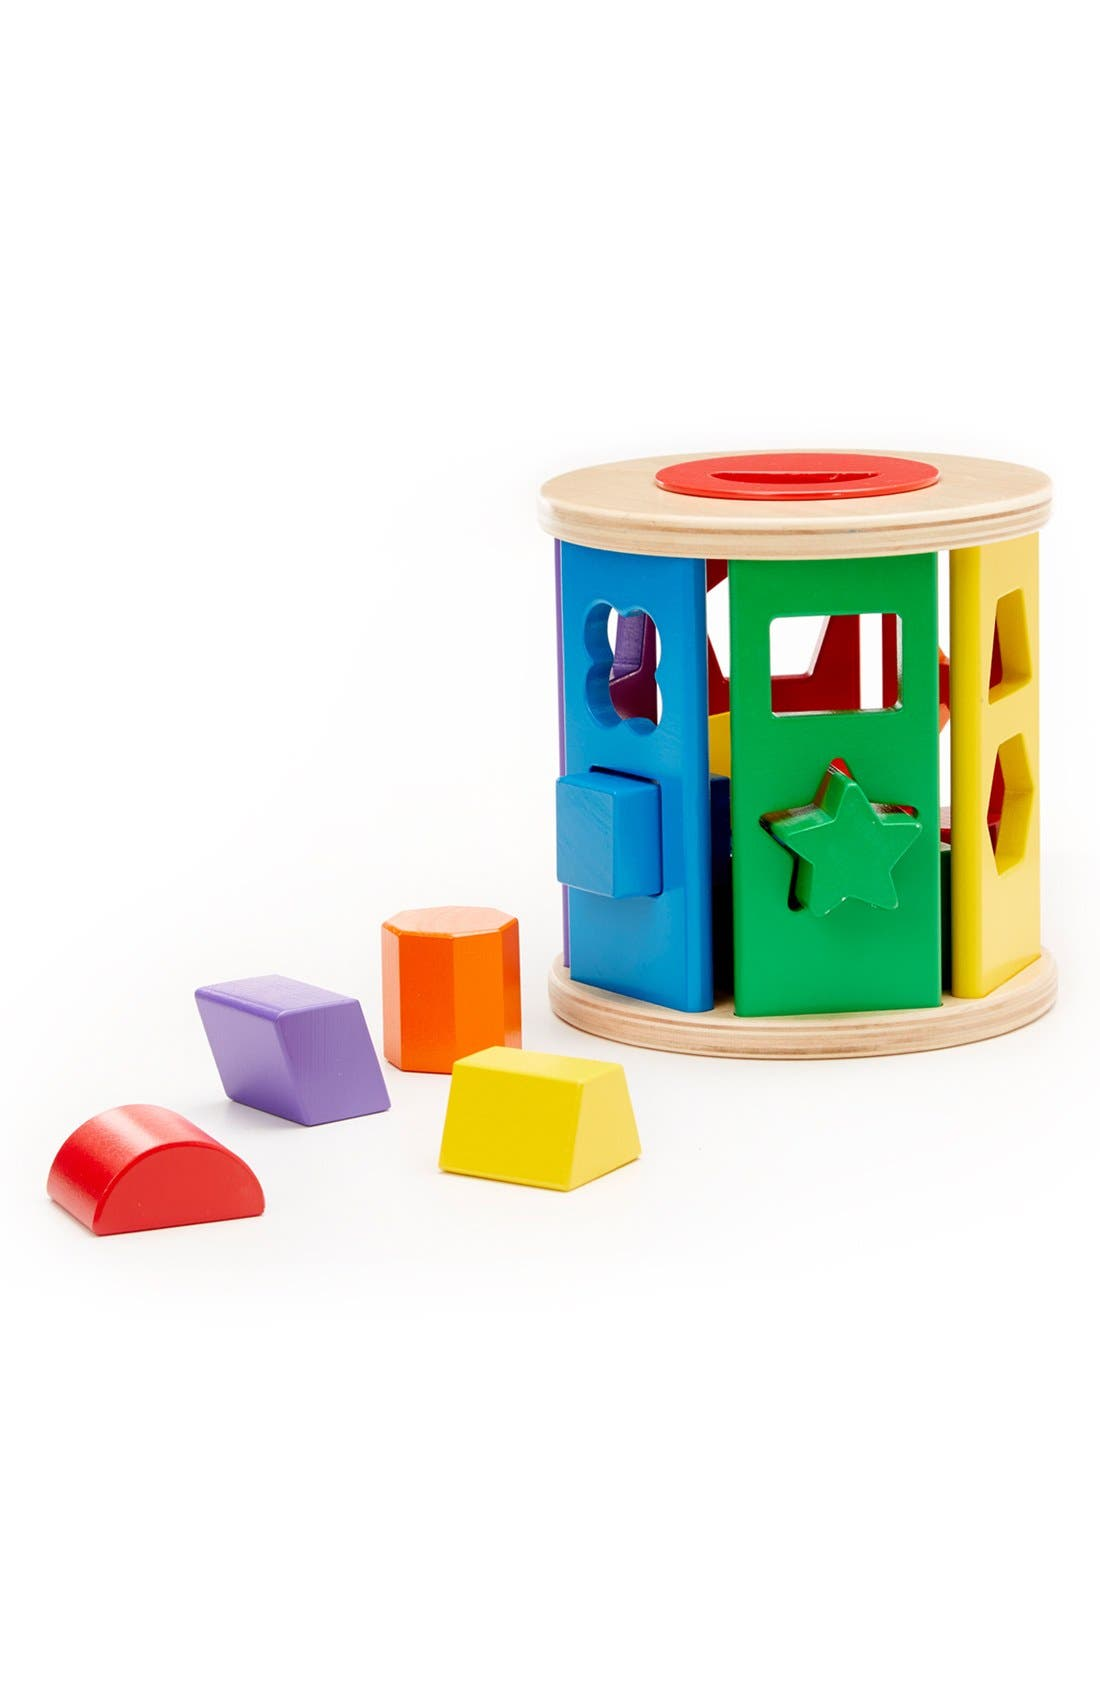 'Match & Roll' Shape Sorter,                             Main thumbnail 1, color,                             200